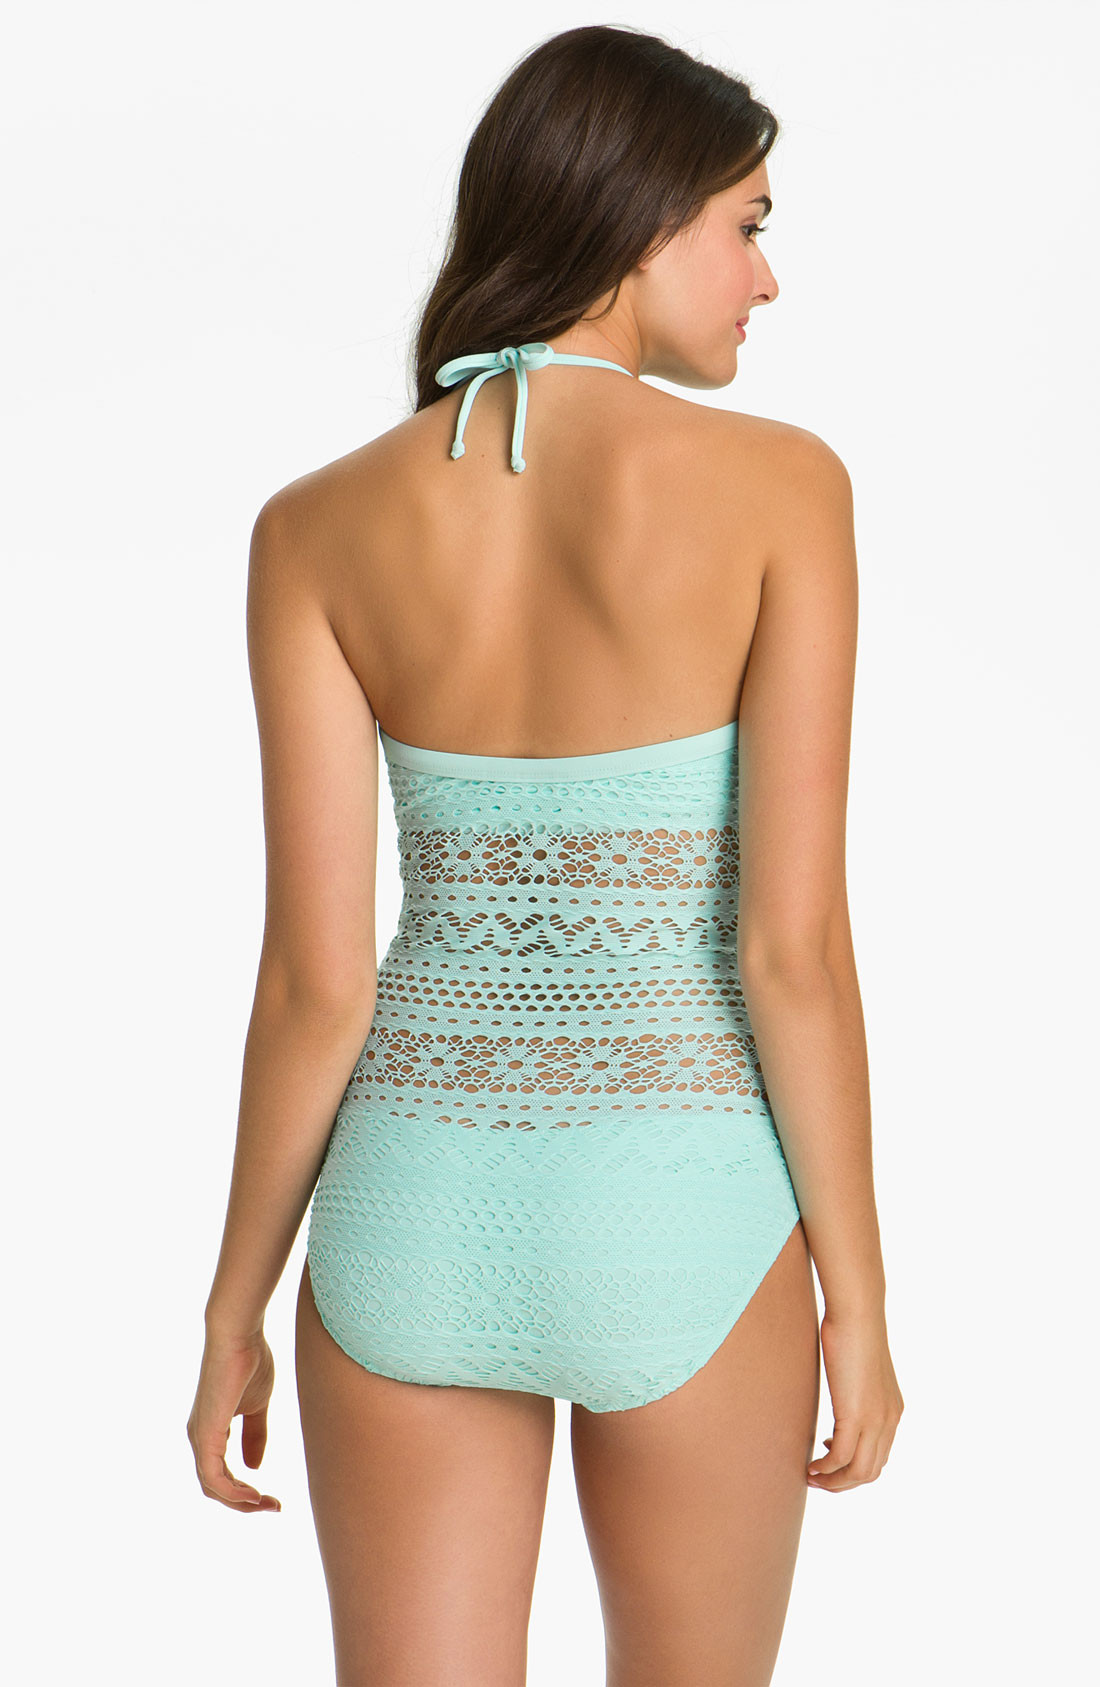 Crochet One Piece Lovely Robin Piccone Penelope Crochet Overlay E Piece Swimsuit Of Marvelous 47 Pictures Crochet One Piece